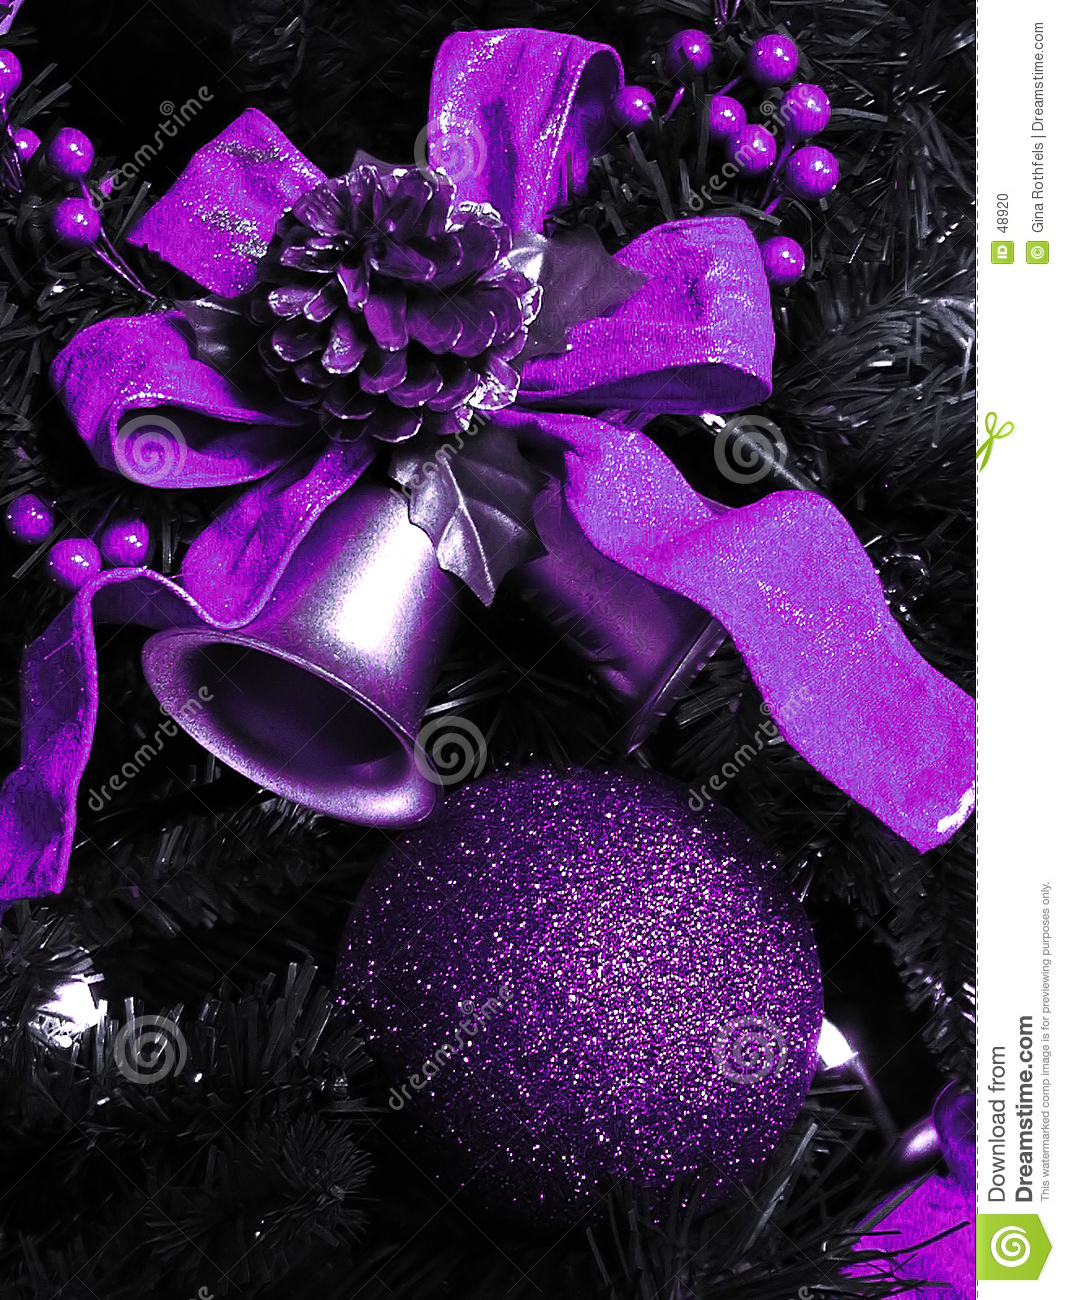 Purple decorated christmas trees - Christmas Decorations Purple Tree